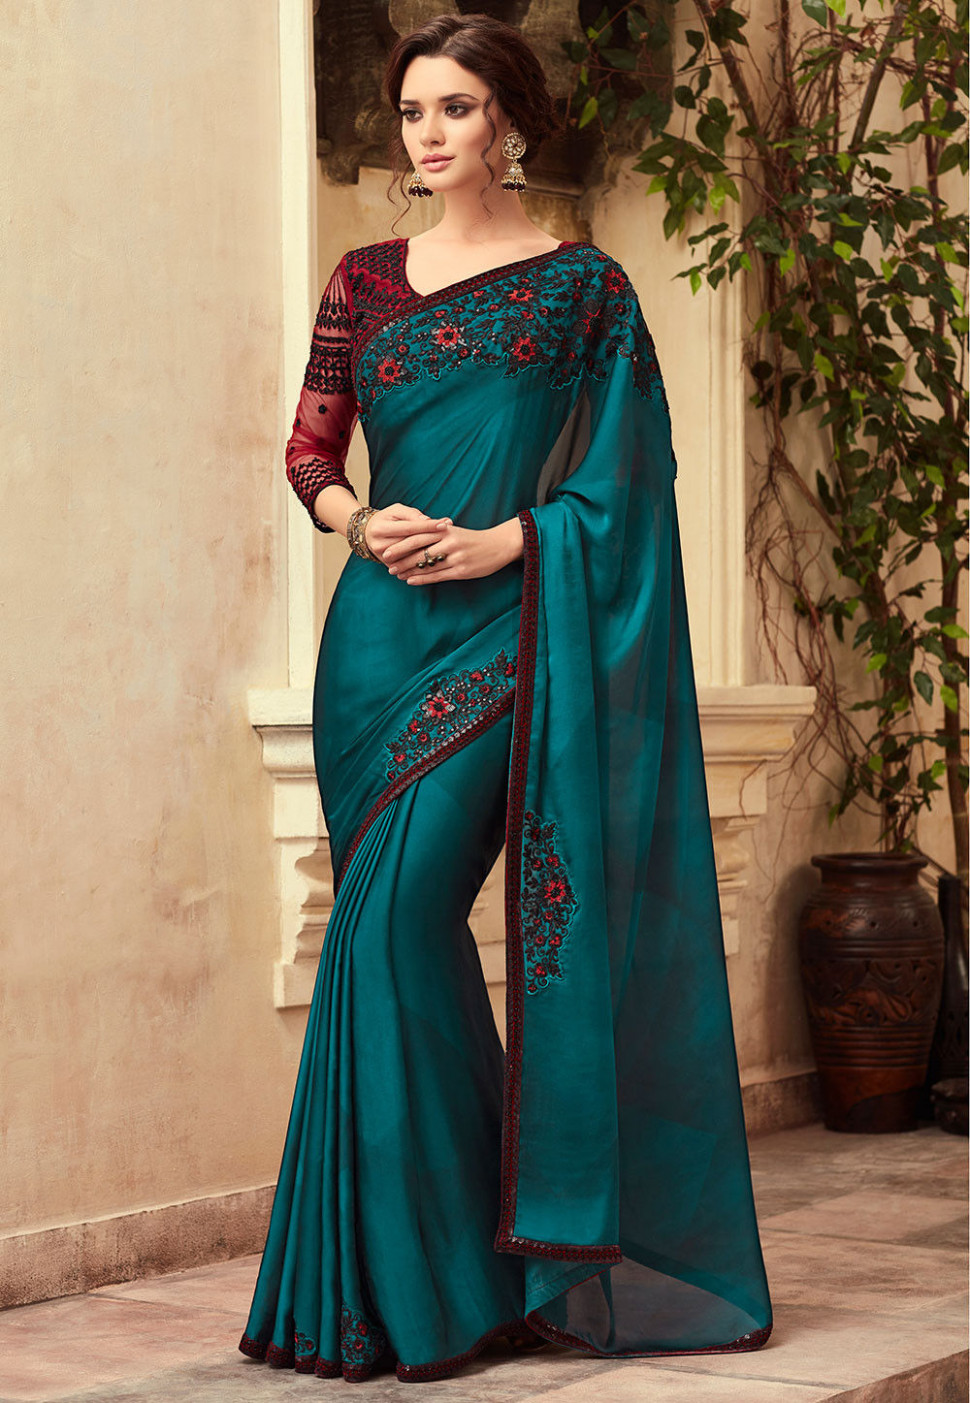 Embroidered Satin Chiffon Saree in Teal Blue : SFVA636